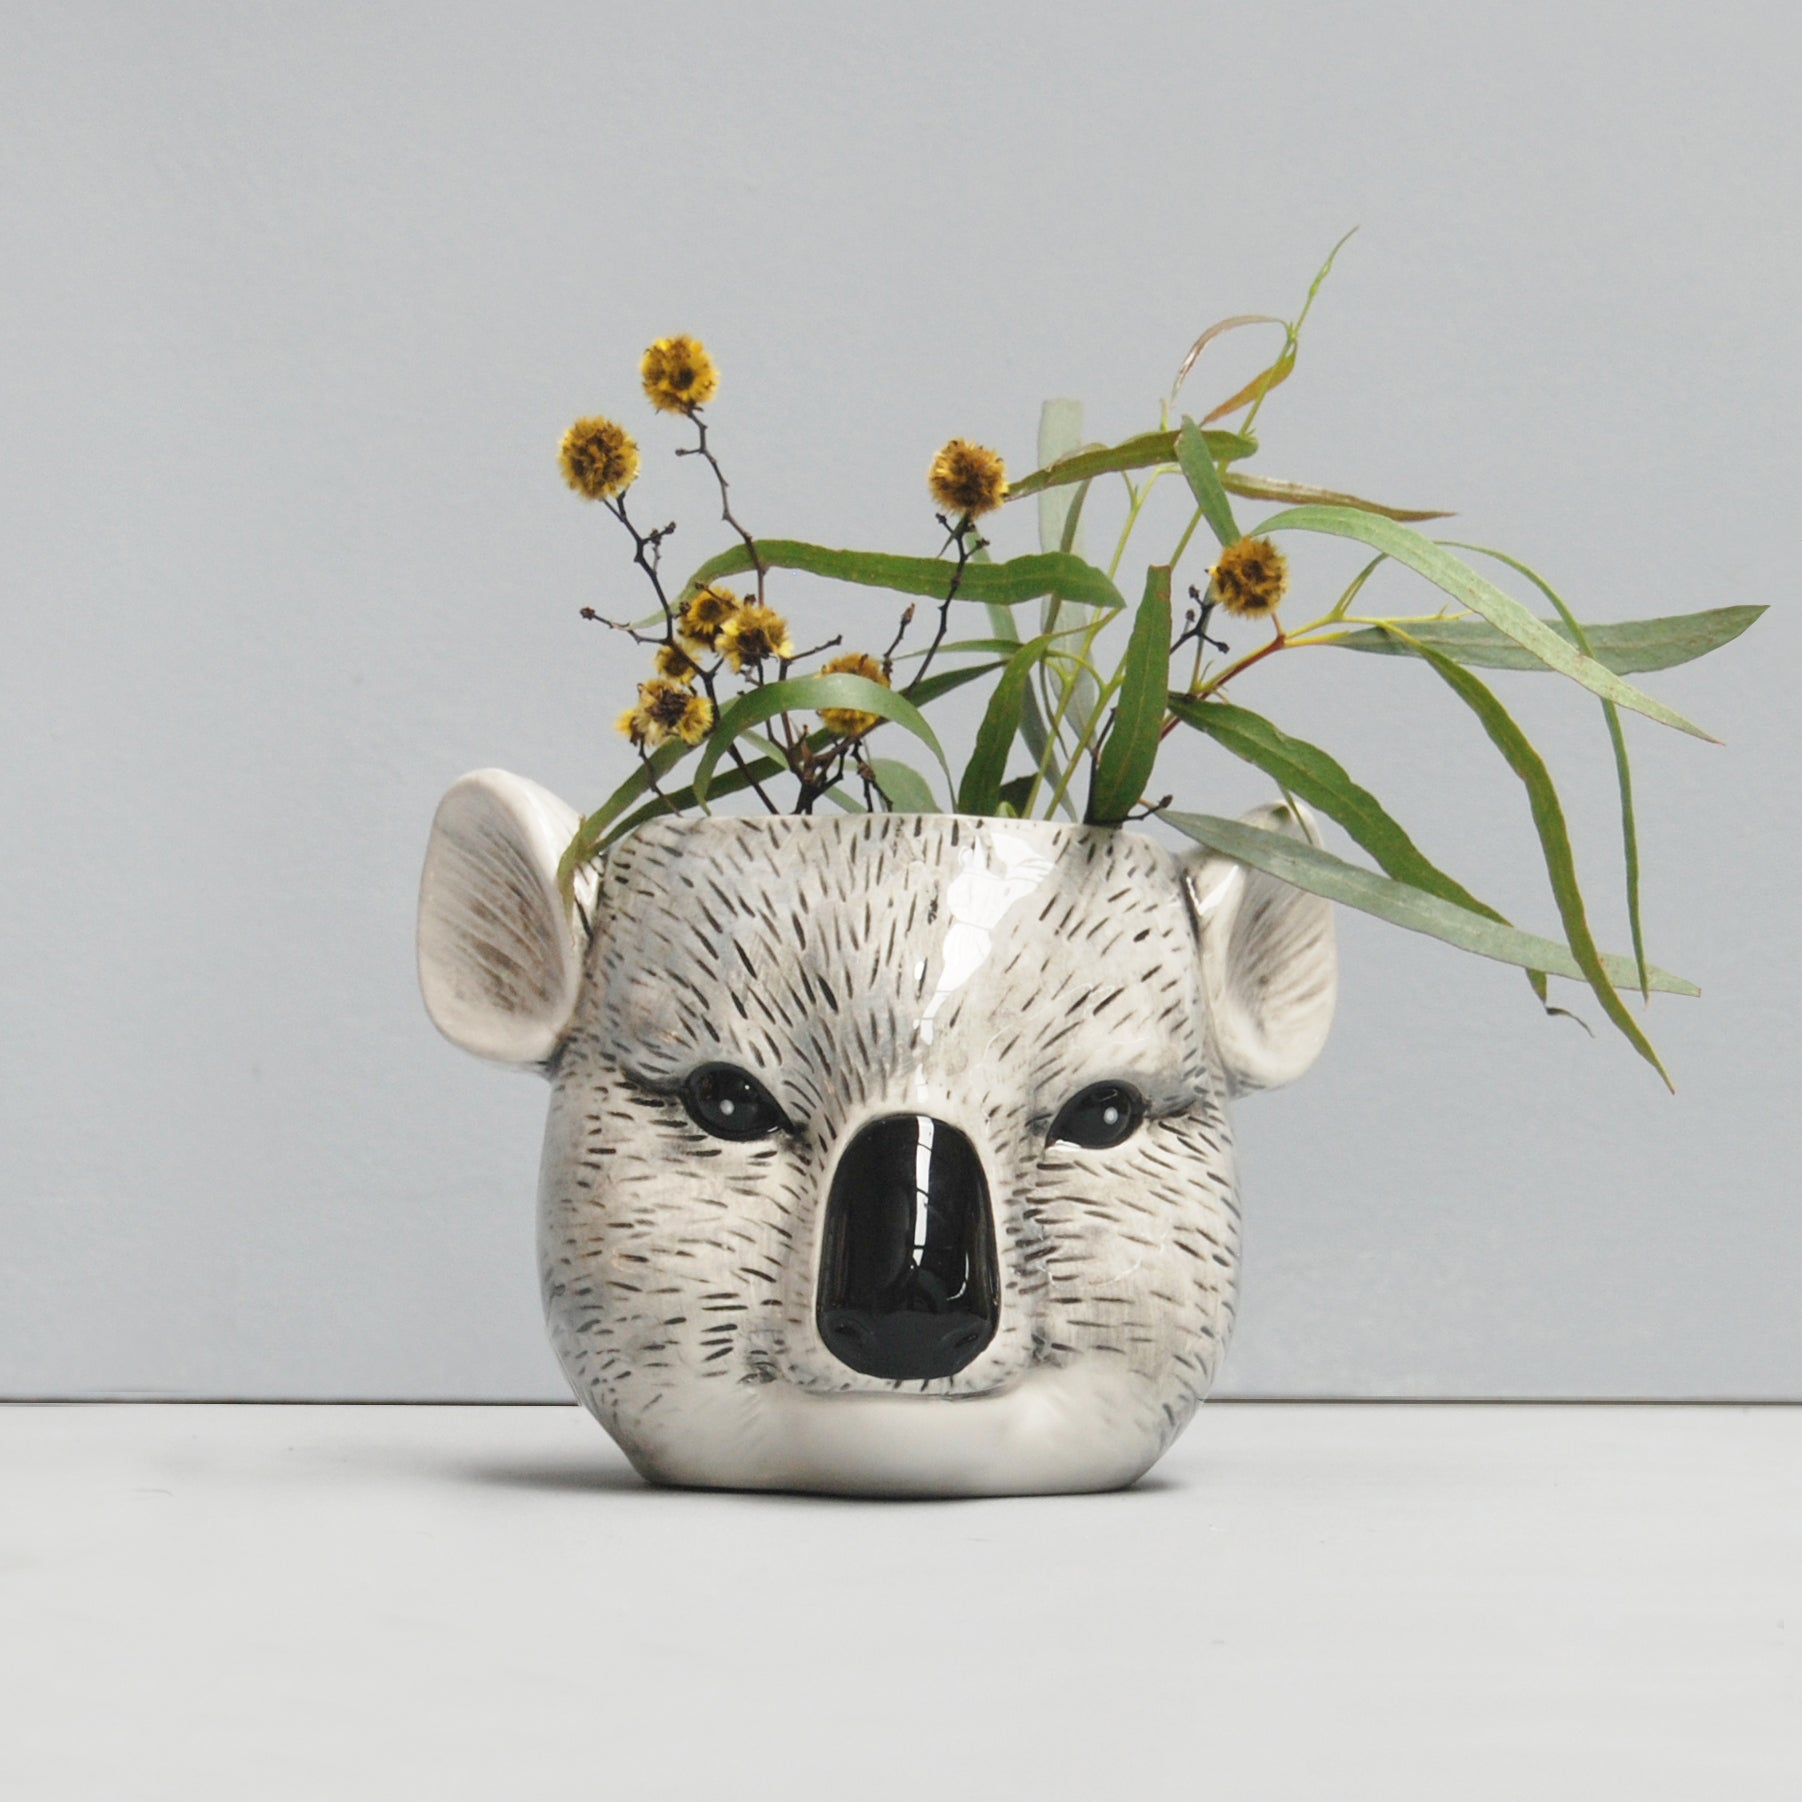 ceramic koala head planter native australian flora and fauna white moose australian designer homewares and gifts home decor pot plant